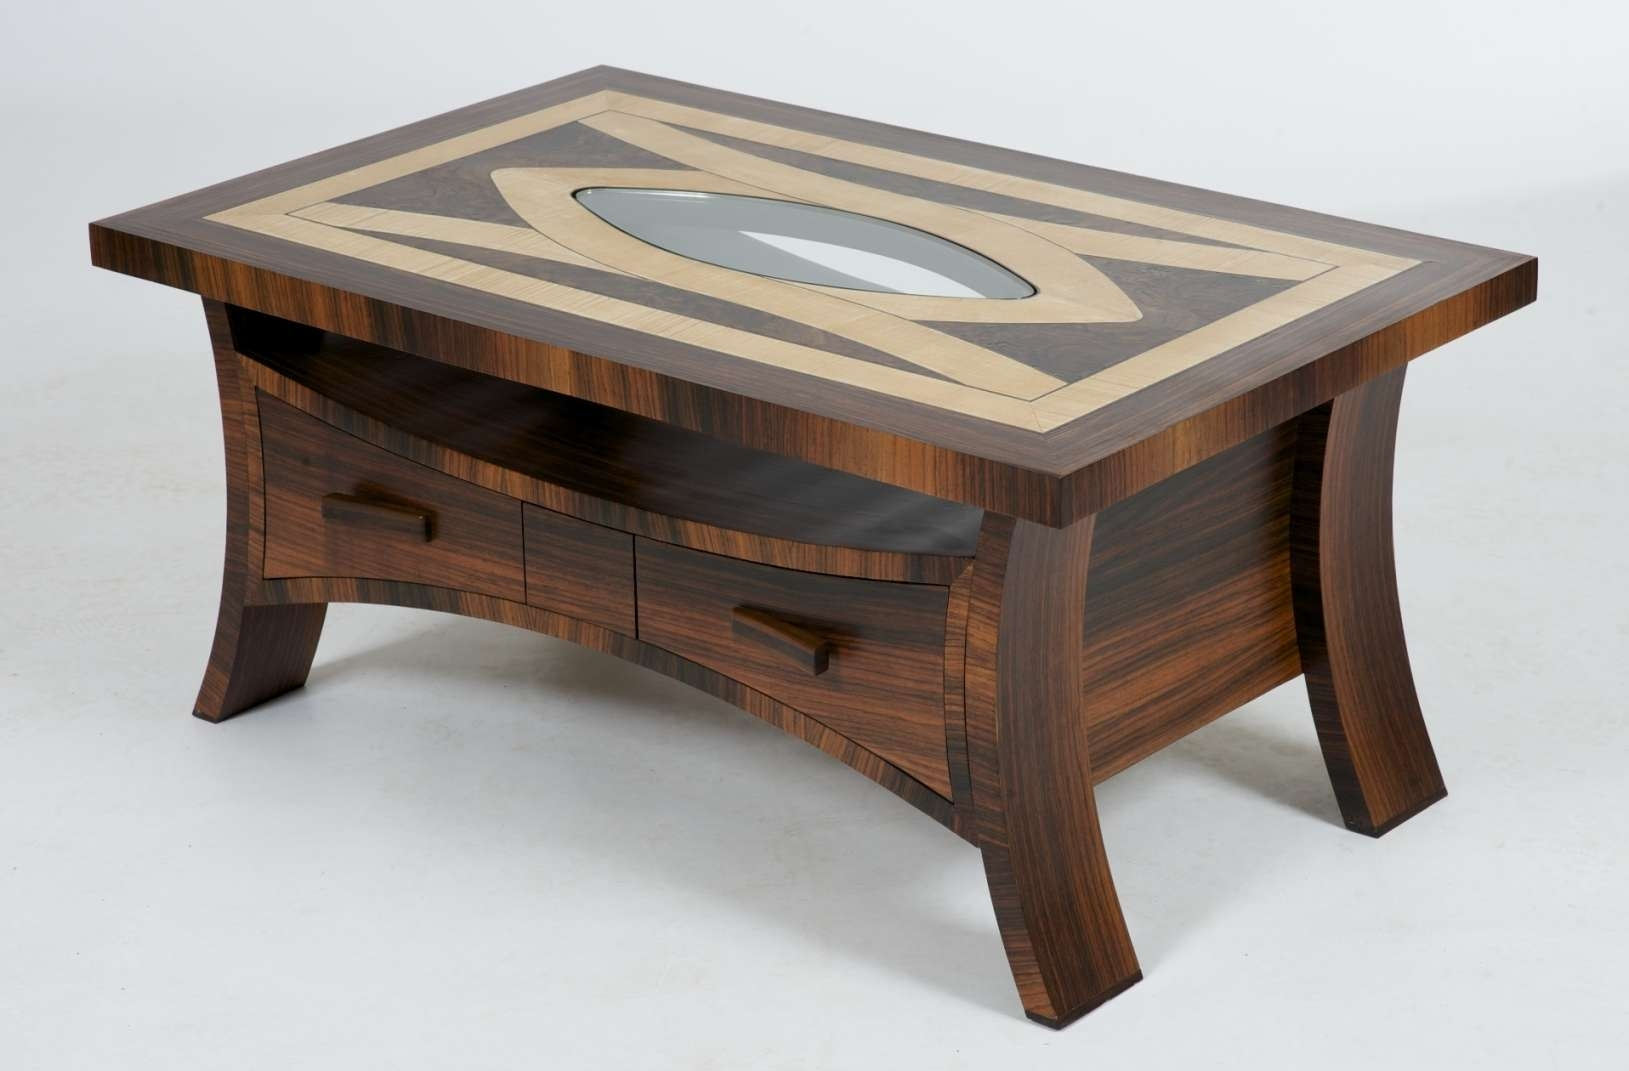 Widely Used Unusual Wooden Coffee Tables Pertaining To Furniture: Coffe Table Set (View 20 of 20)